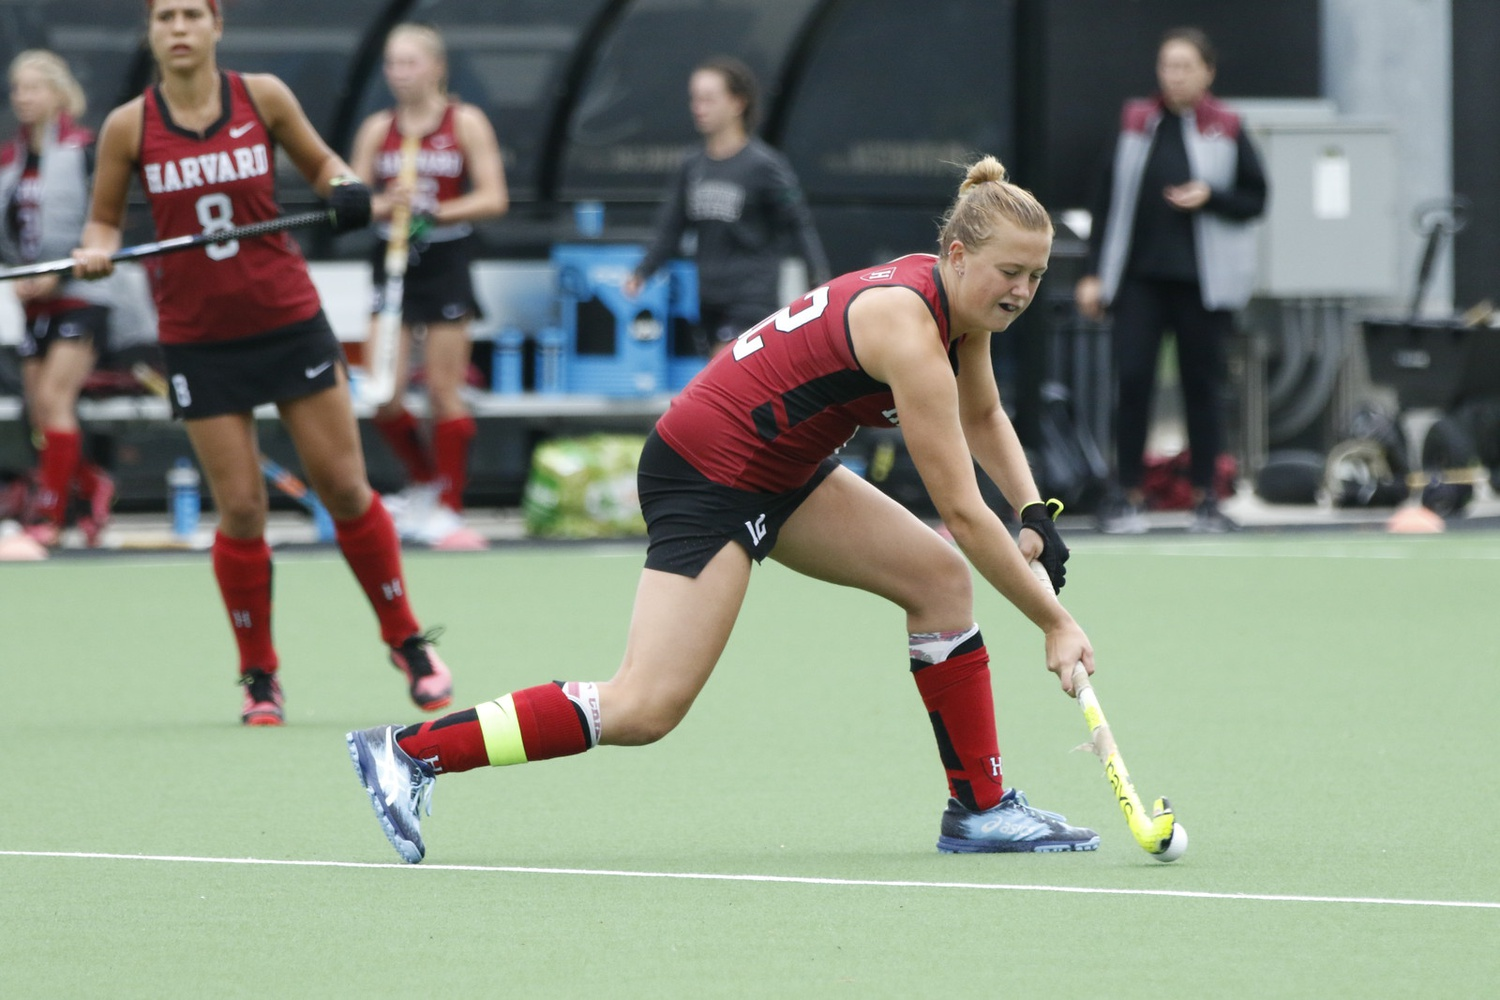 Junior forward Mimi Tarrant scored the game-winning goal in this weekend's match against UPenn.